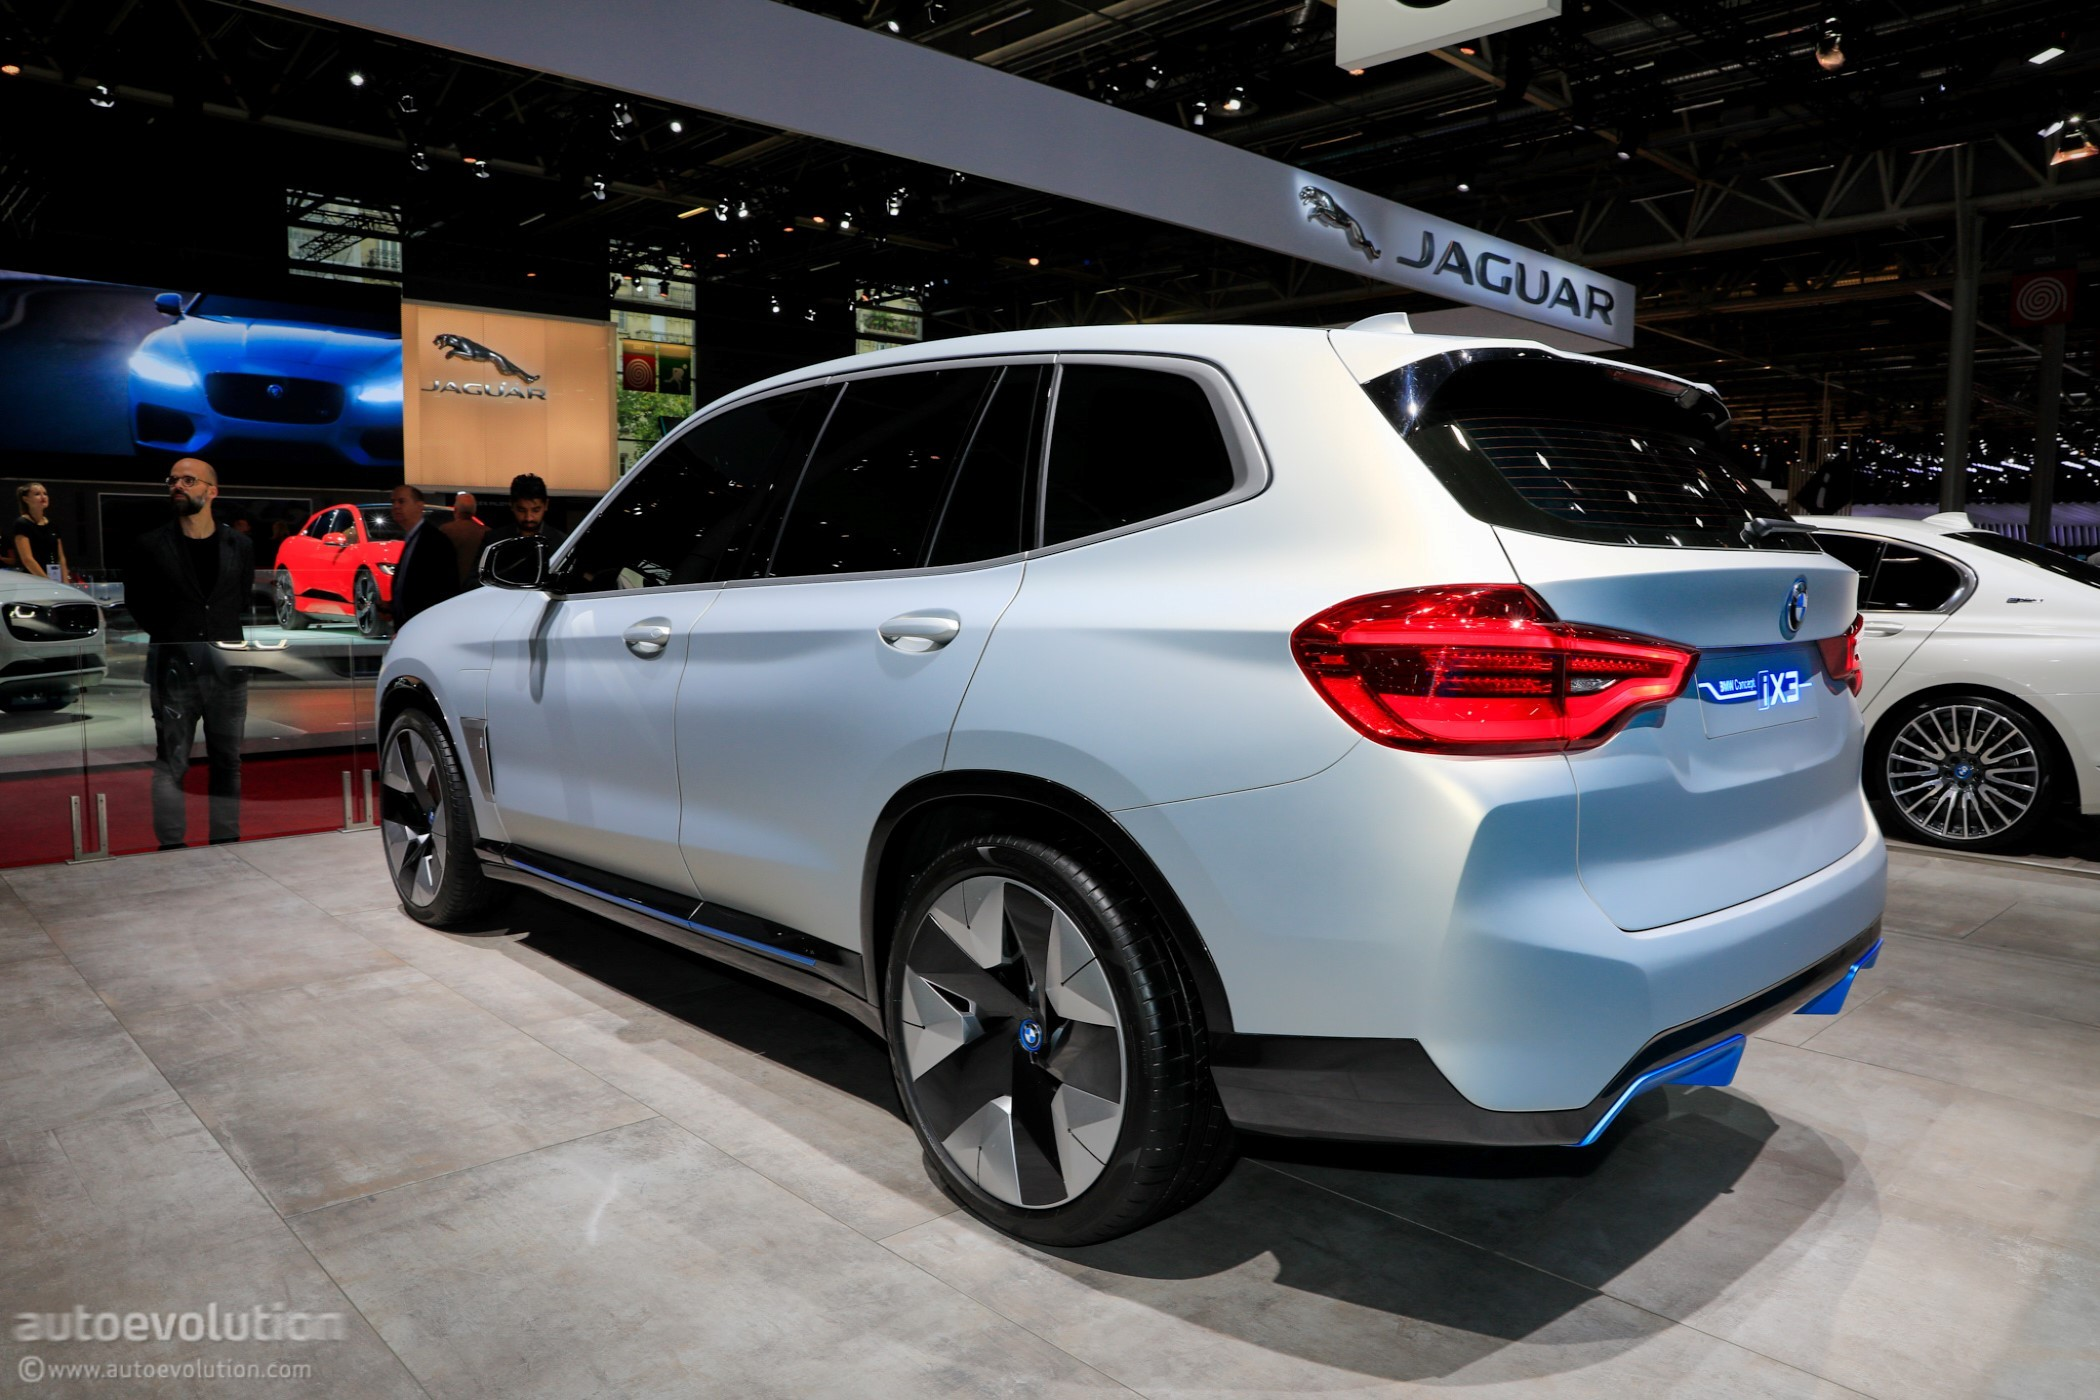 bmw concept ix3 features pirelli p zero tires in paris autoevolution. Black Bedroom Furniture Sets. Home Design Ideas